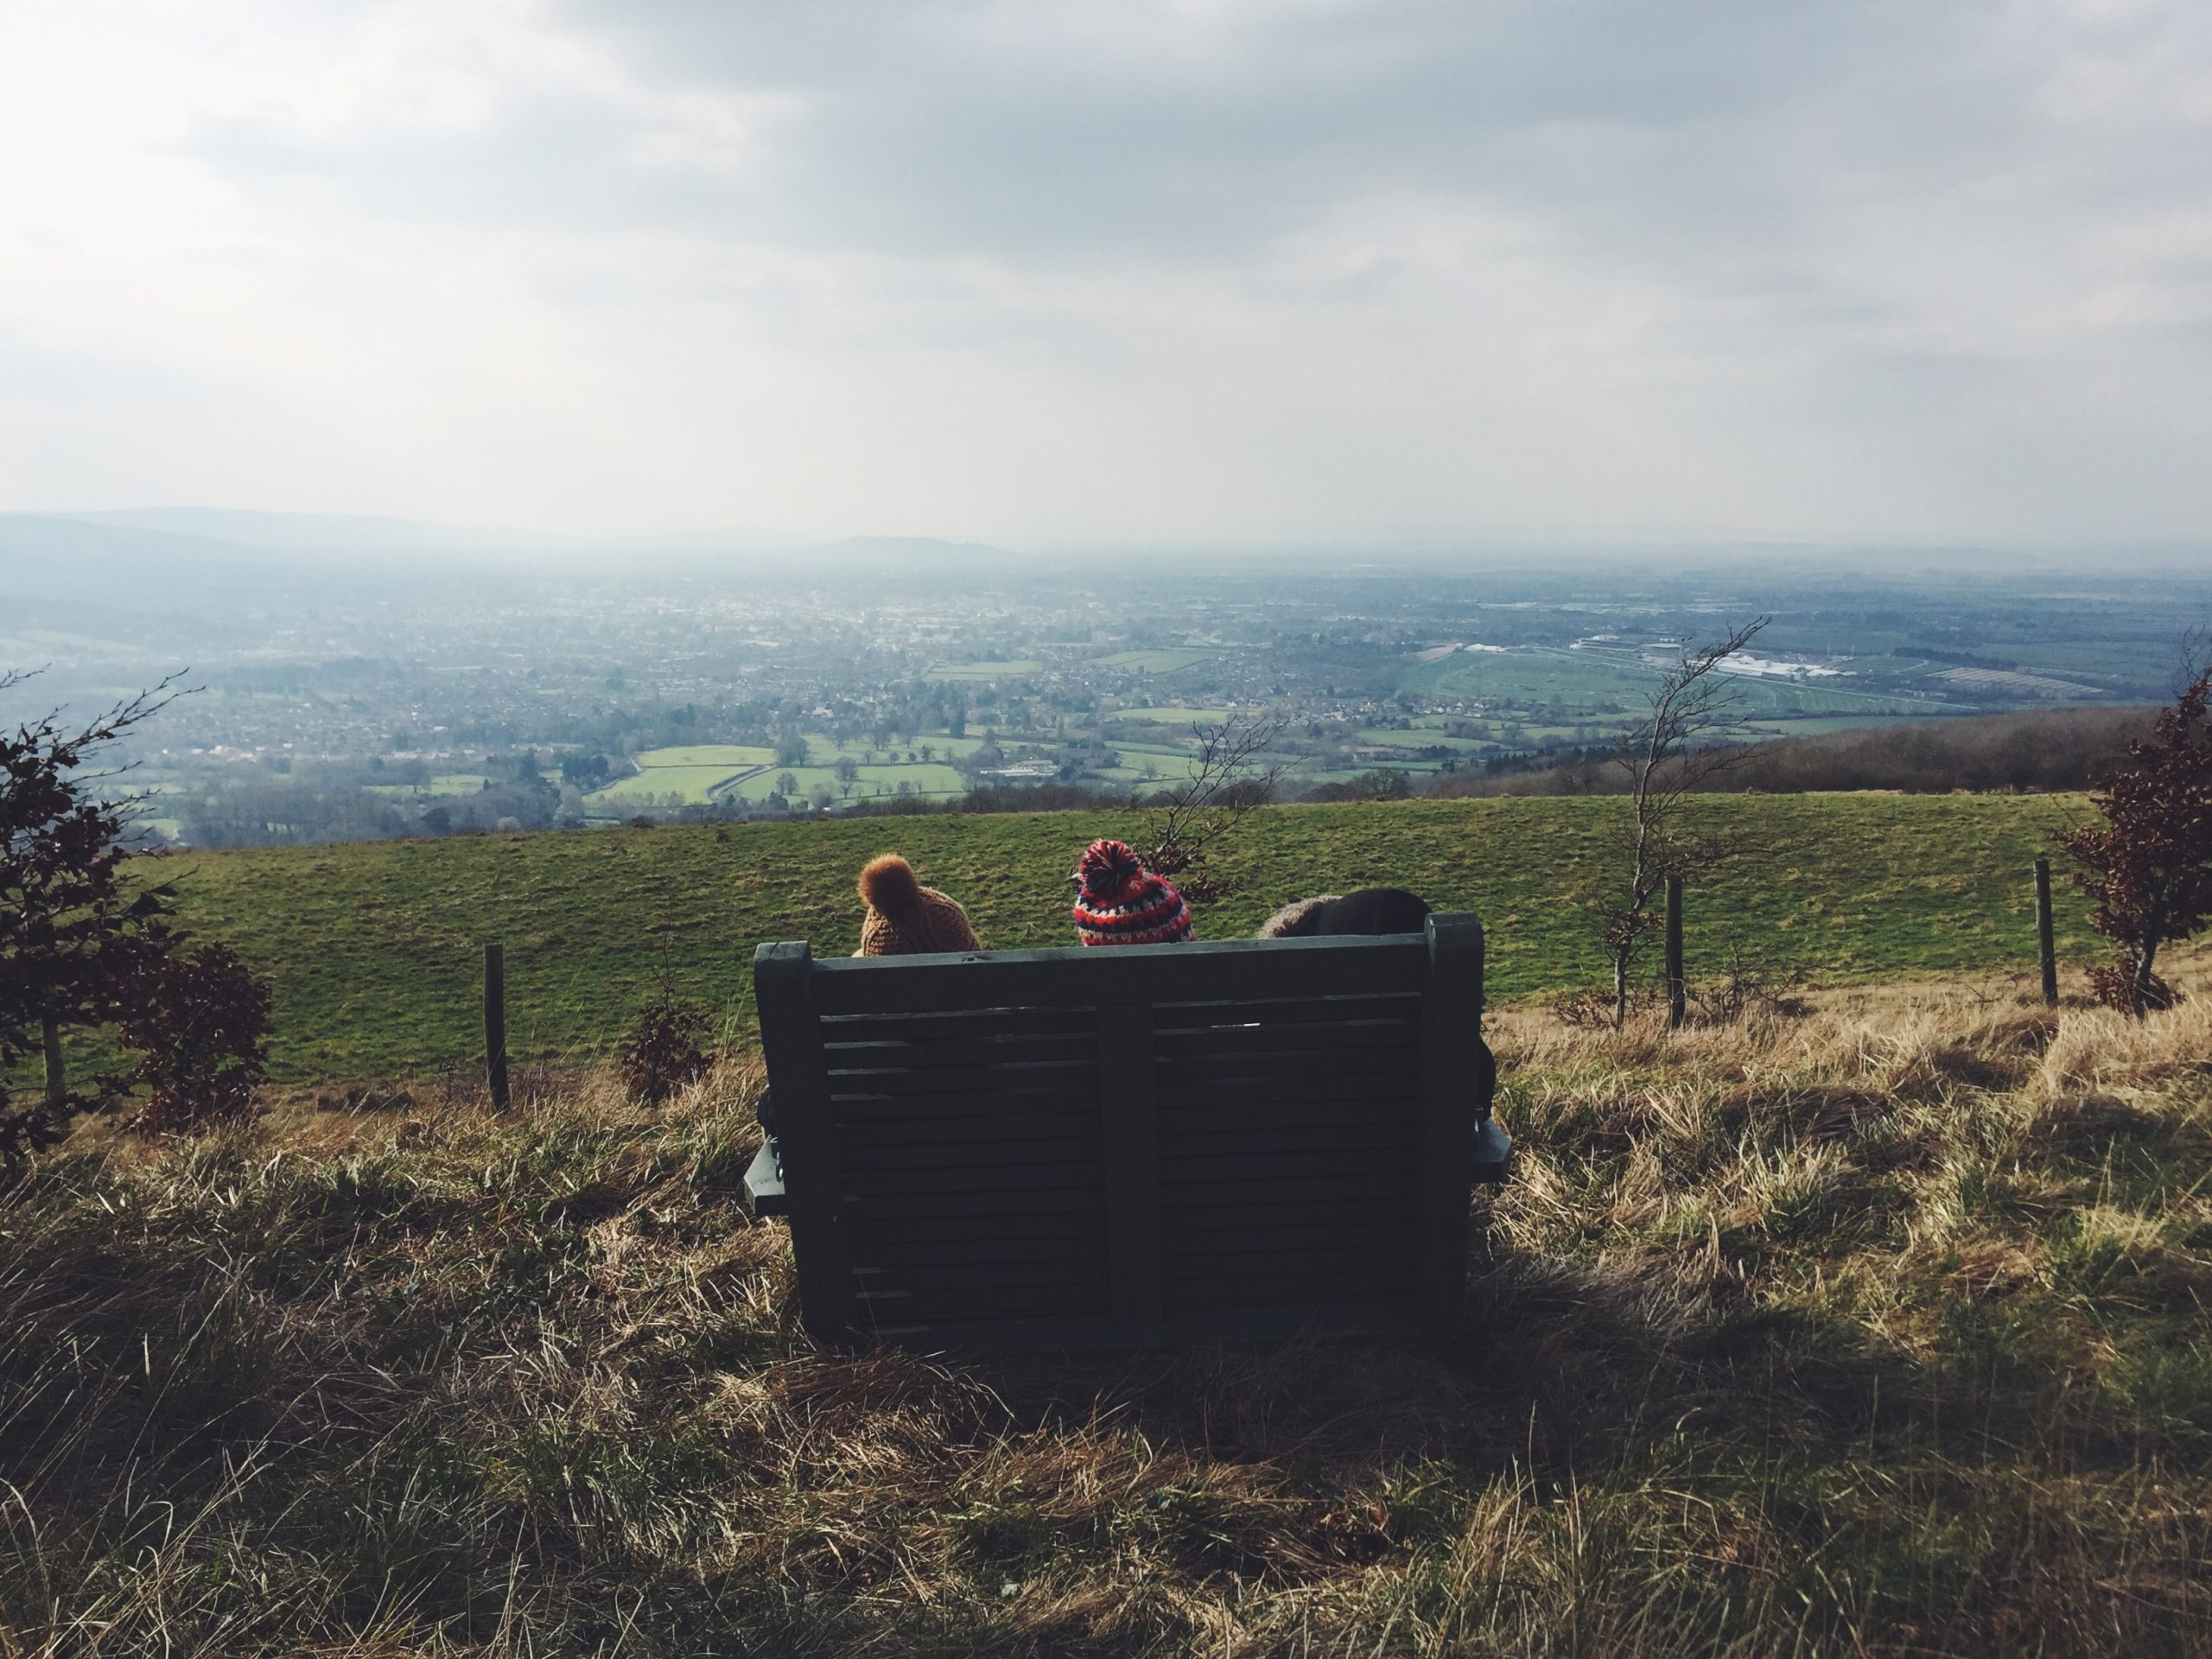 Two children sit on a bench at the top of a hill in the countryside